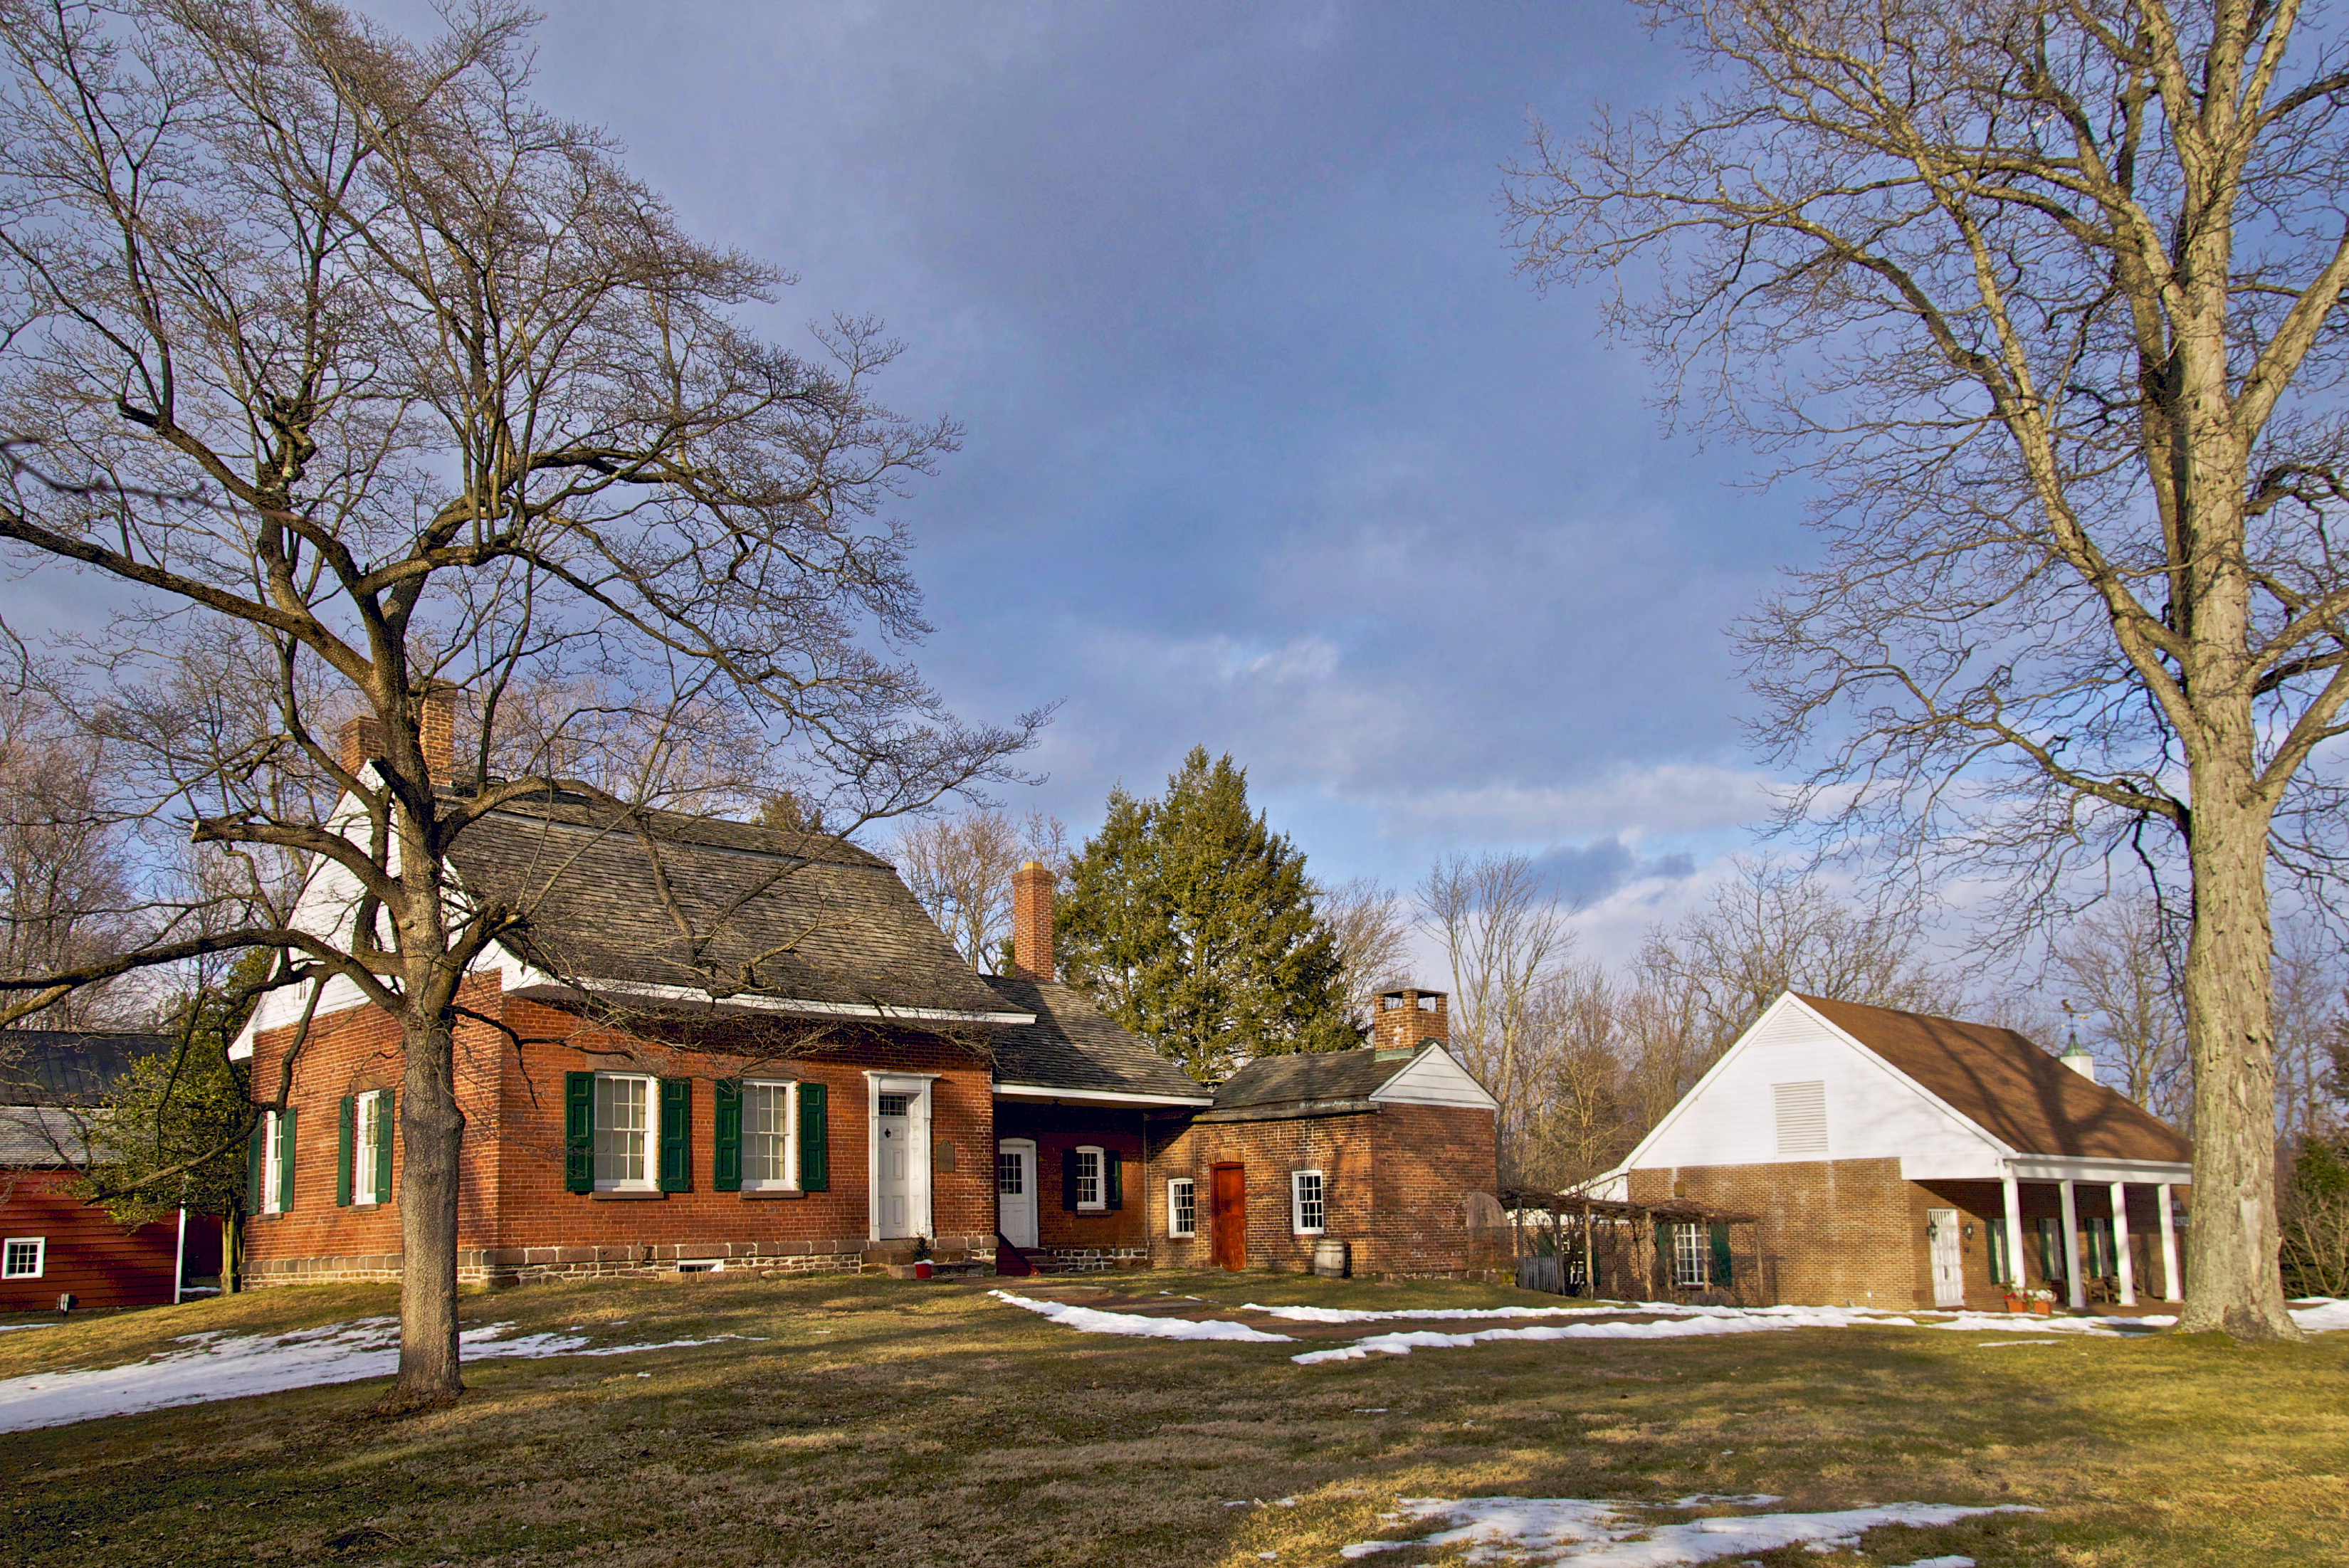 The Jacob Blauvelt House and the History Center at The Historical Society of Rockland County